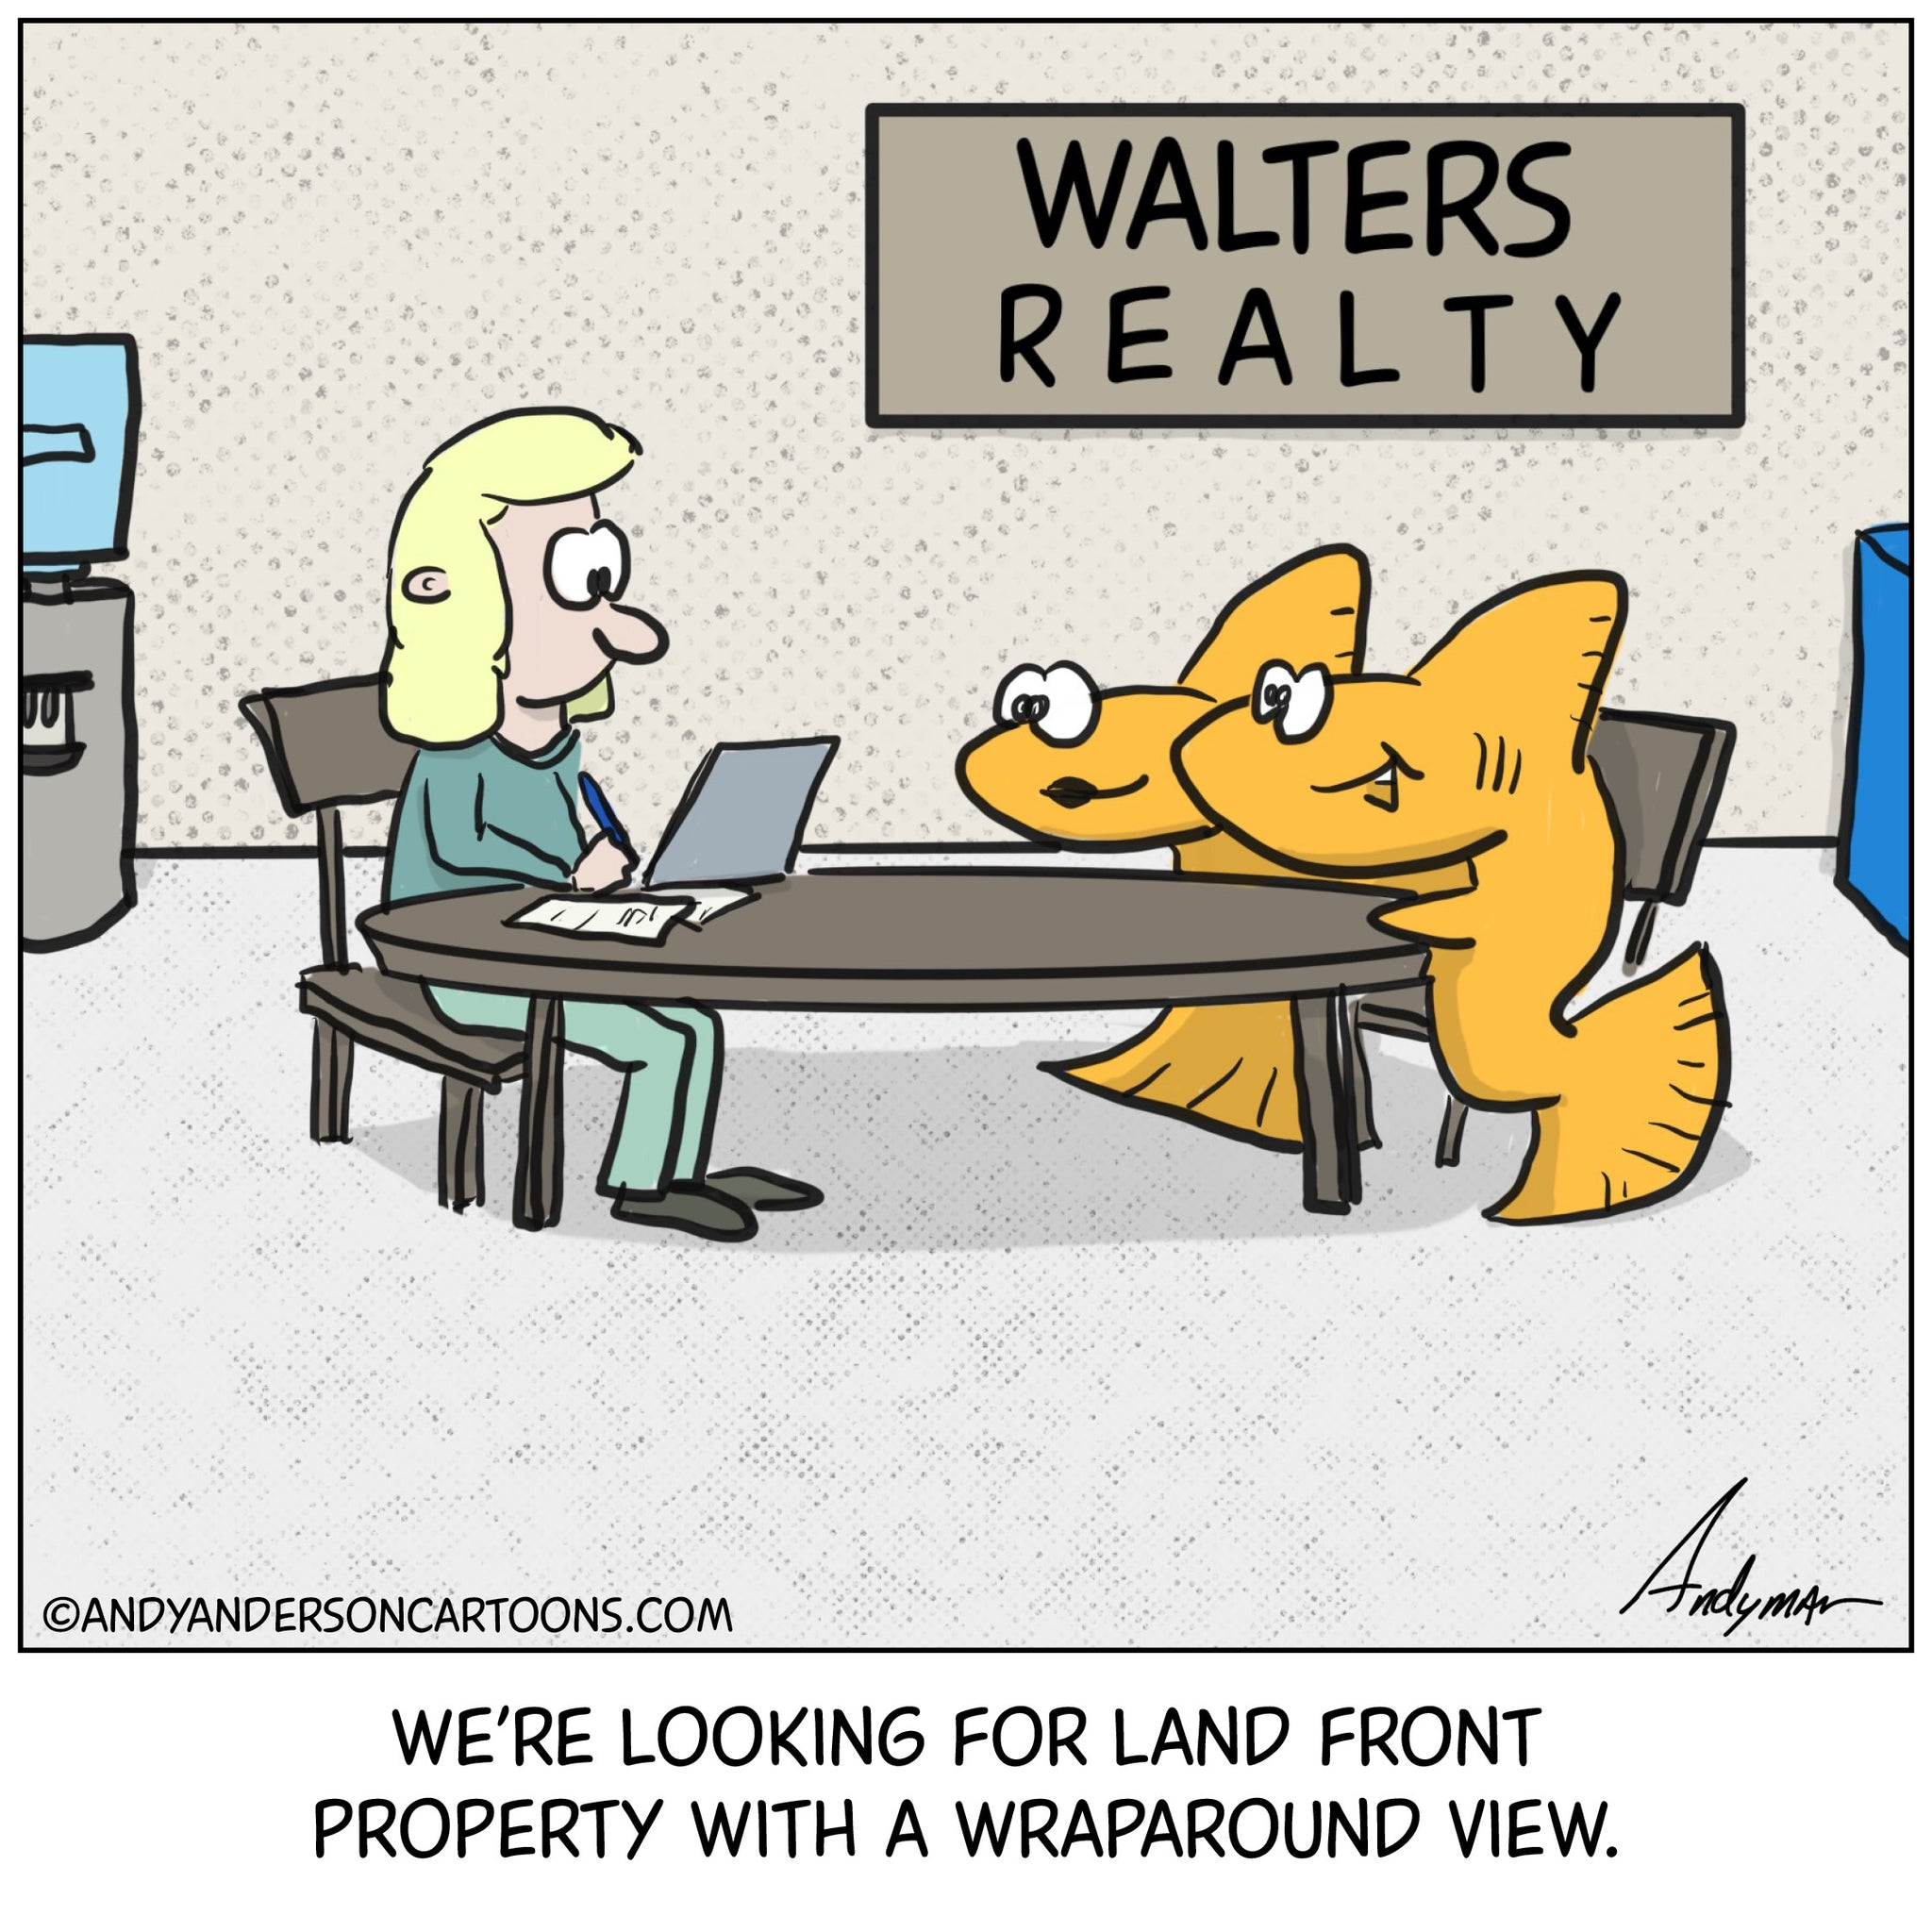 Cartoon about fish sitting with realtor looking for land front property